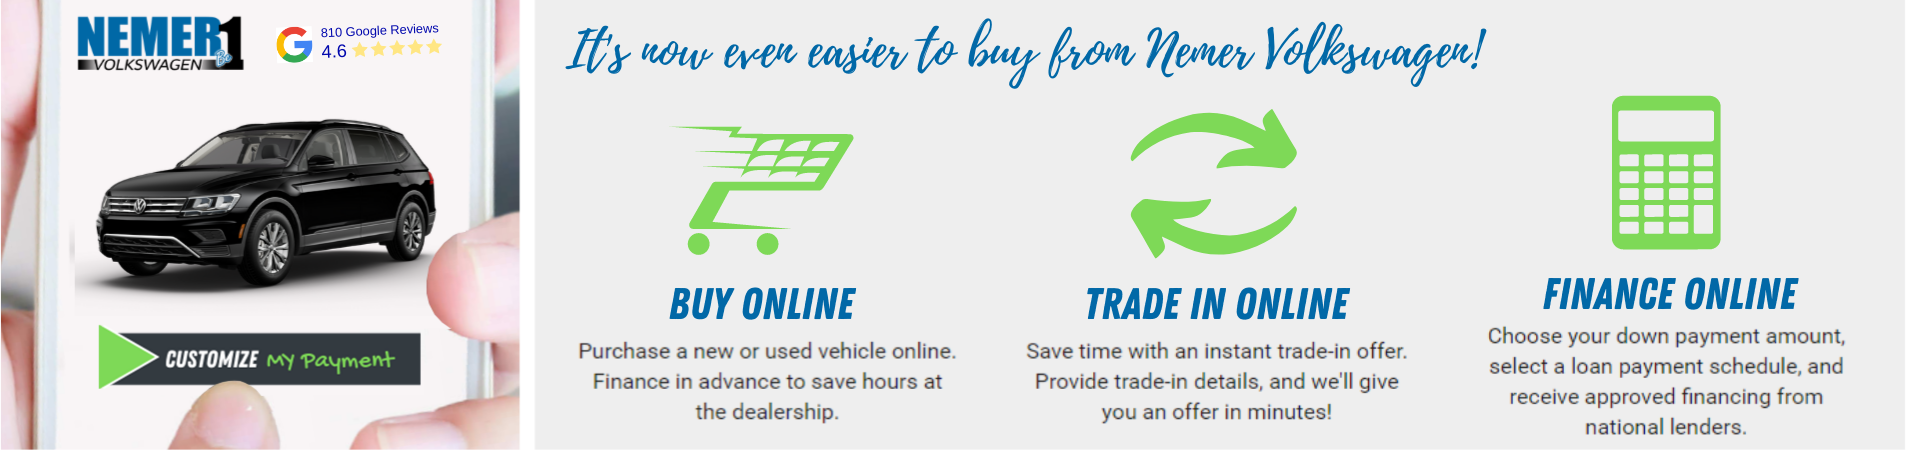 Darwin Buy Online at Nemer VW